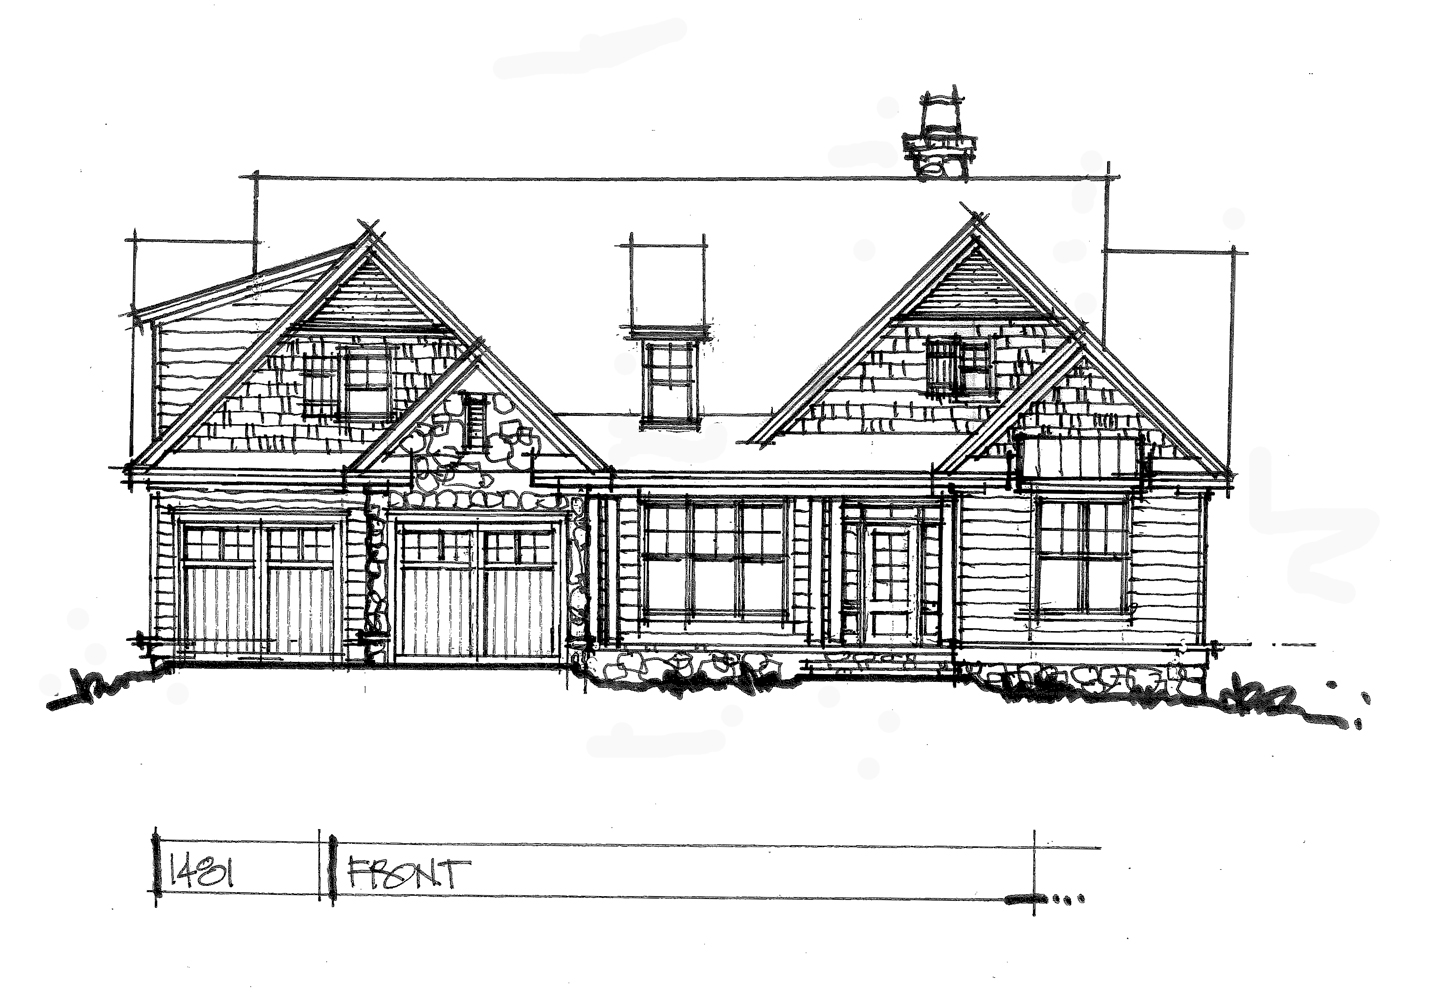 Check out the front elevation for house plan 1481.